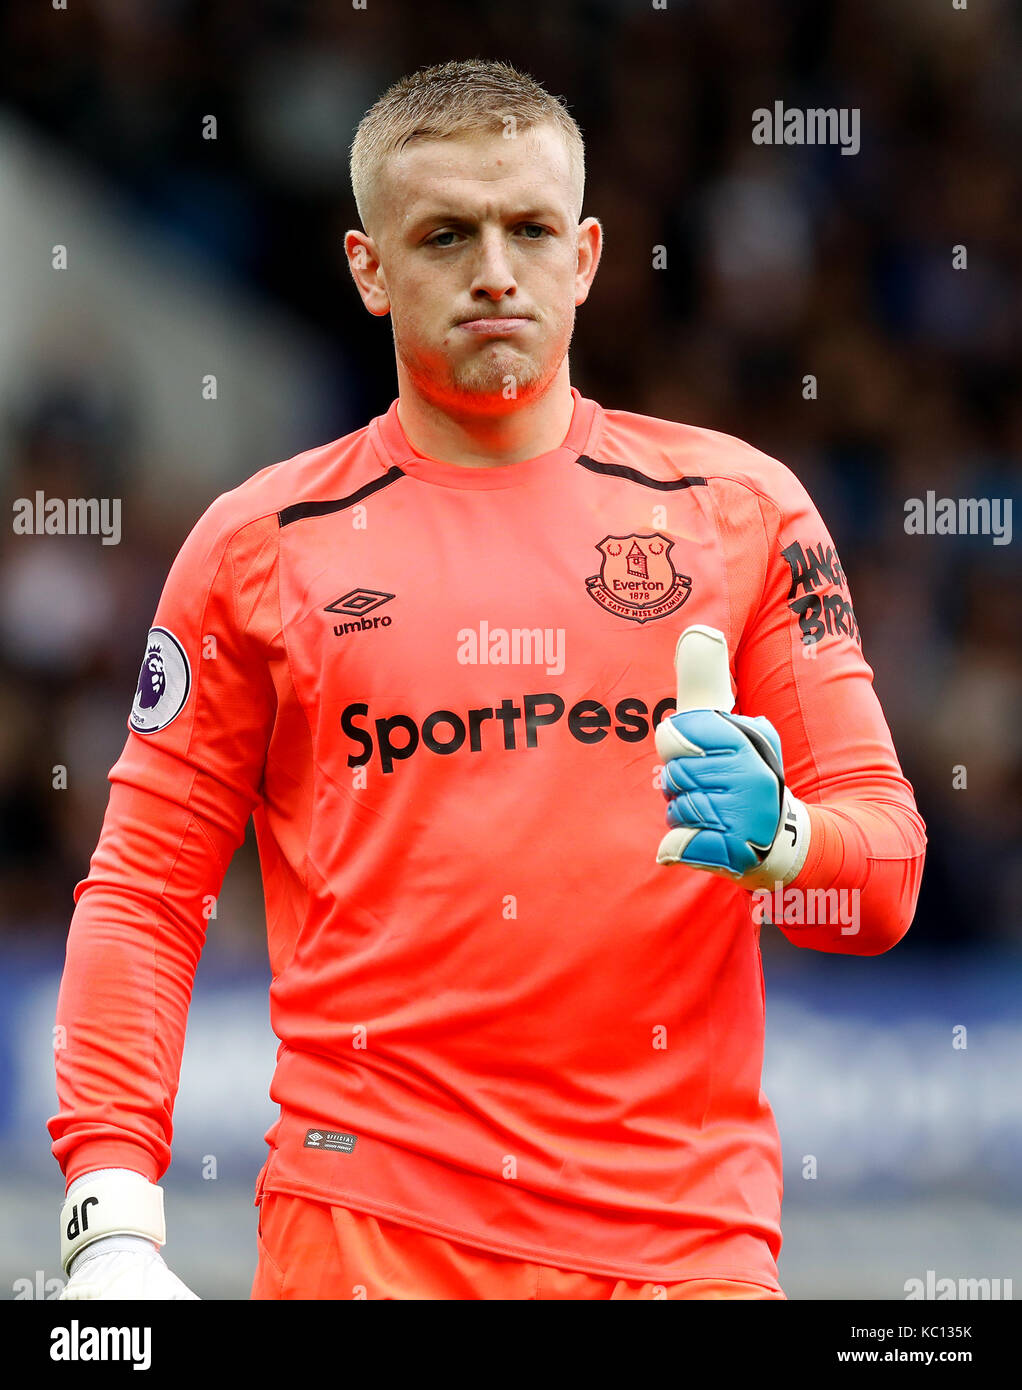 Everton goalkeeper Jordan Pickford Stock Photo  162293647   Alamy Everton goalkeeper Jordan Pickford